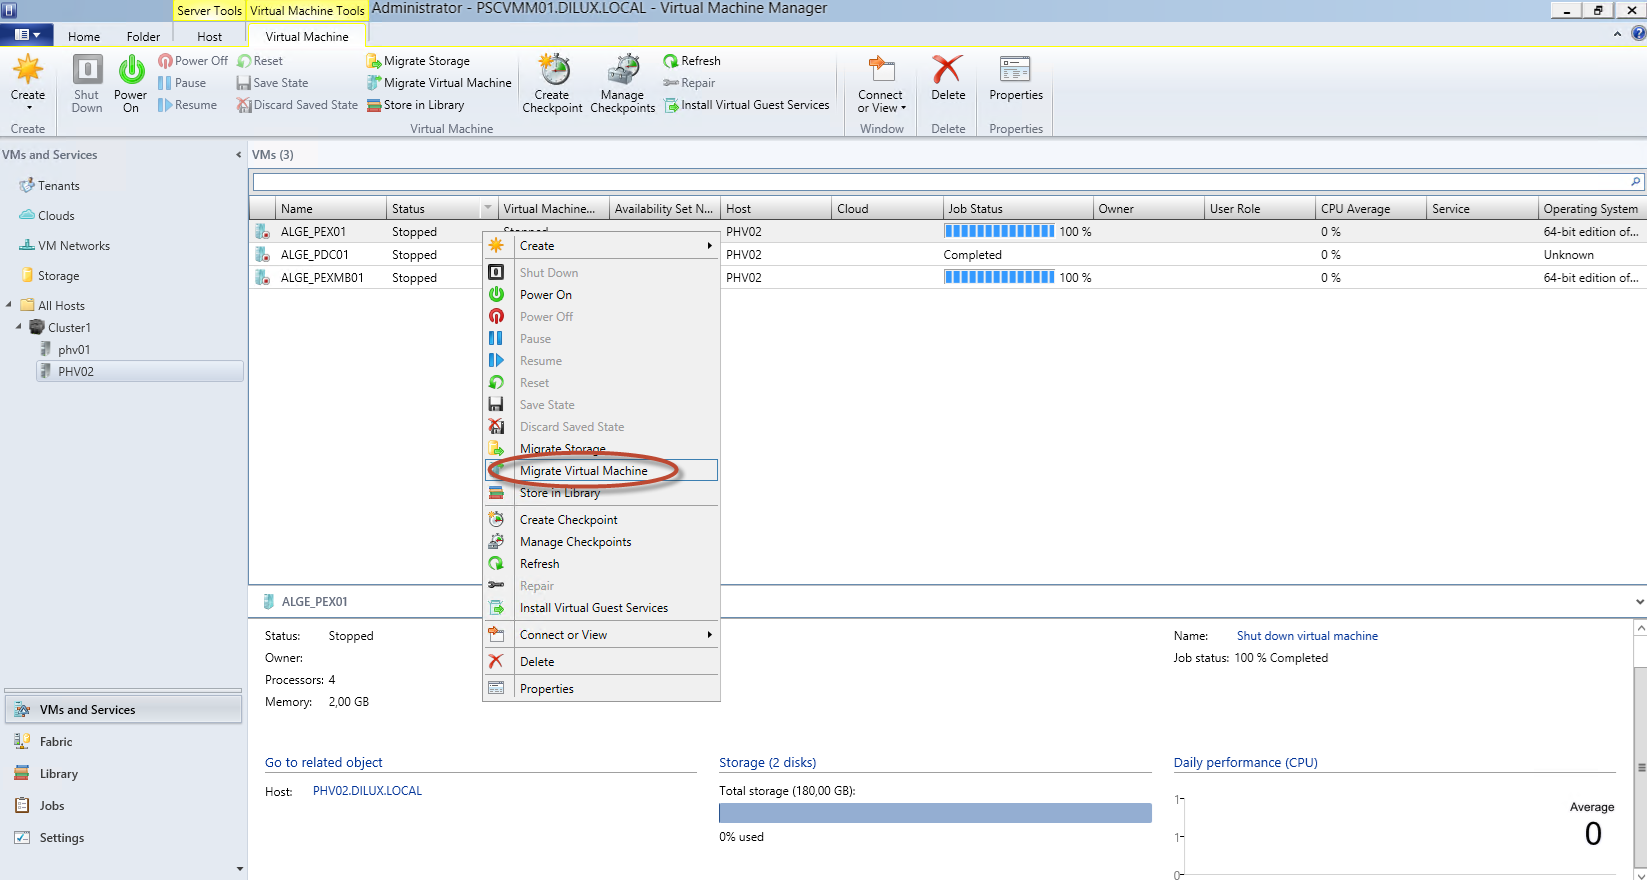 Hyper-V 3 Cluster y System Center Virtual Machine Manager 2012 SP1 - Migración de Equipos a Alta Disponibilidad